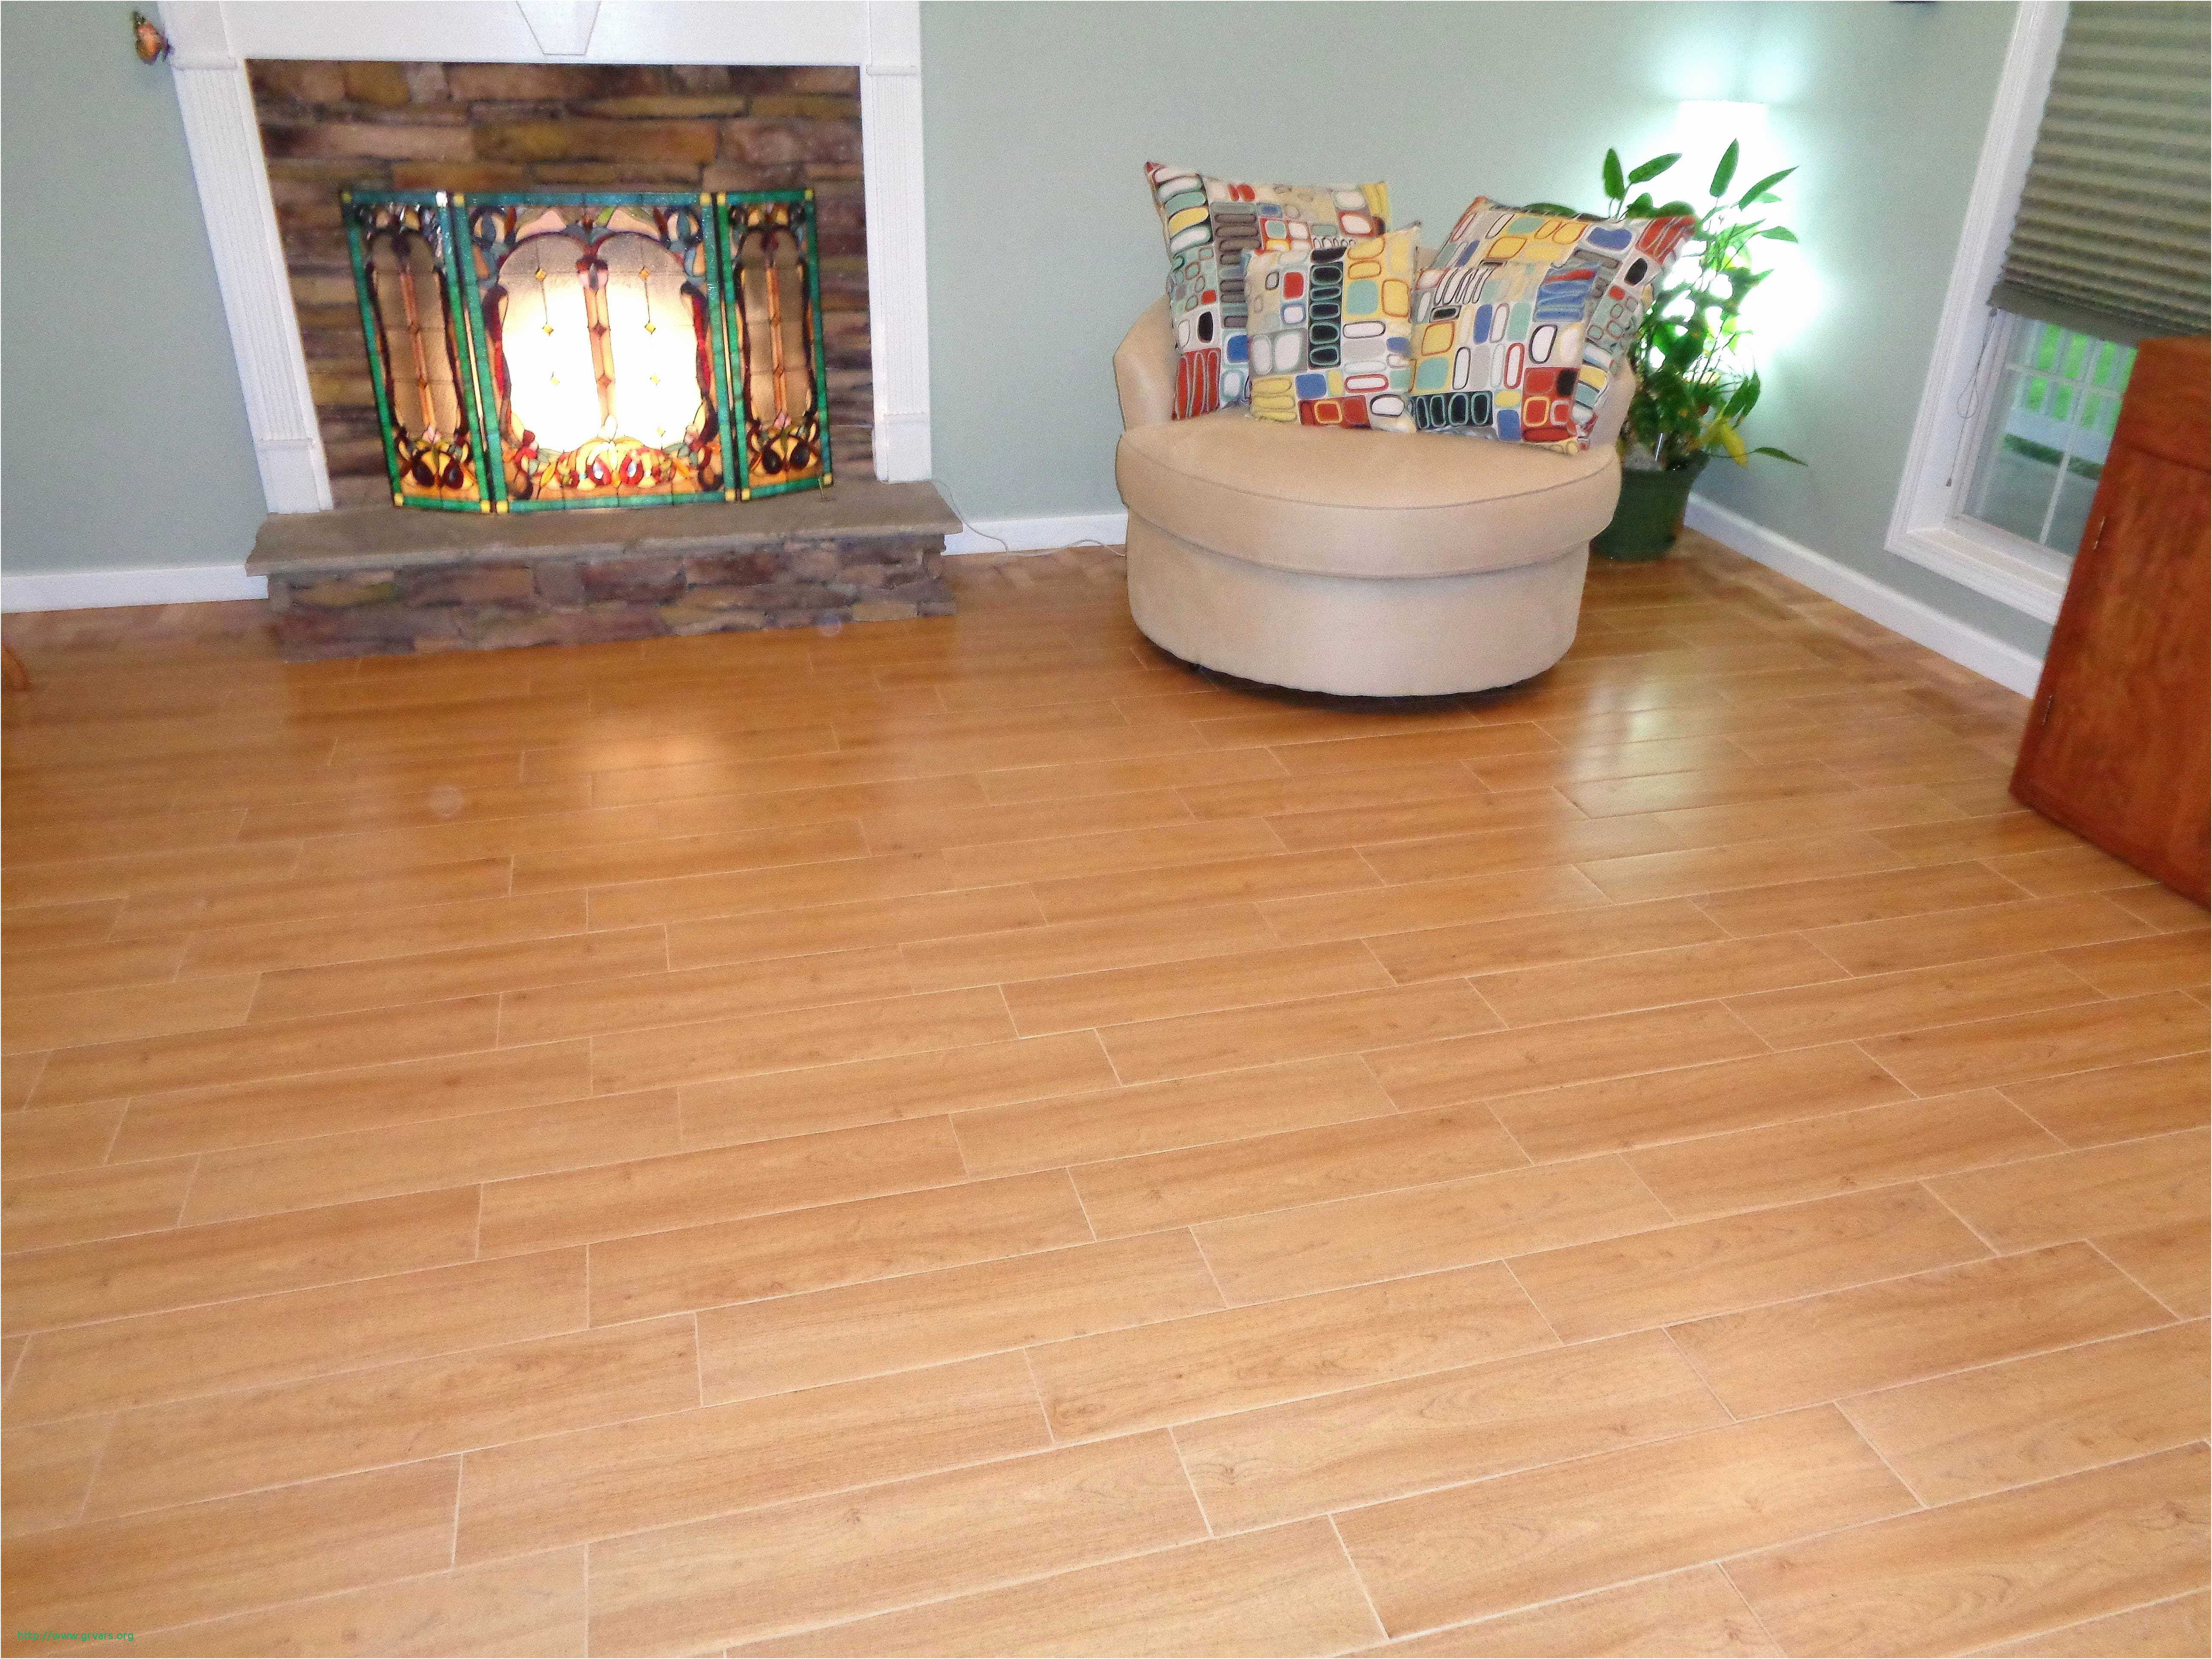 popular hardwood floor stain colors 2017 of 24 beau changing the color of hardwood floors ideas blog throughout changing the color of hardwood floors inspirant pergo flooring colors concrete tom tarrant space ideas pinterest